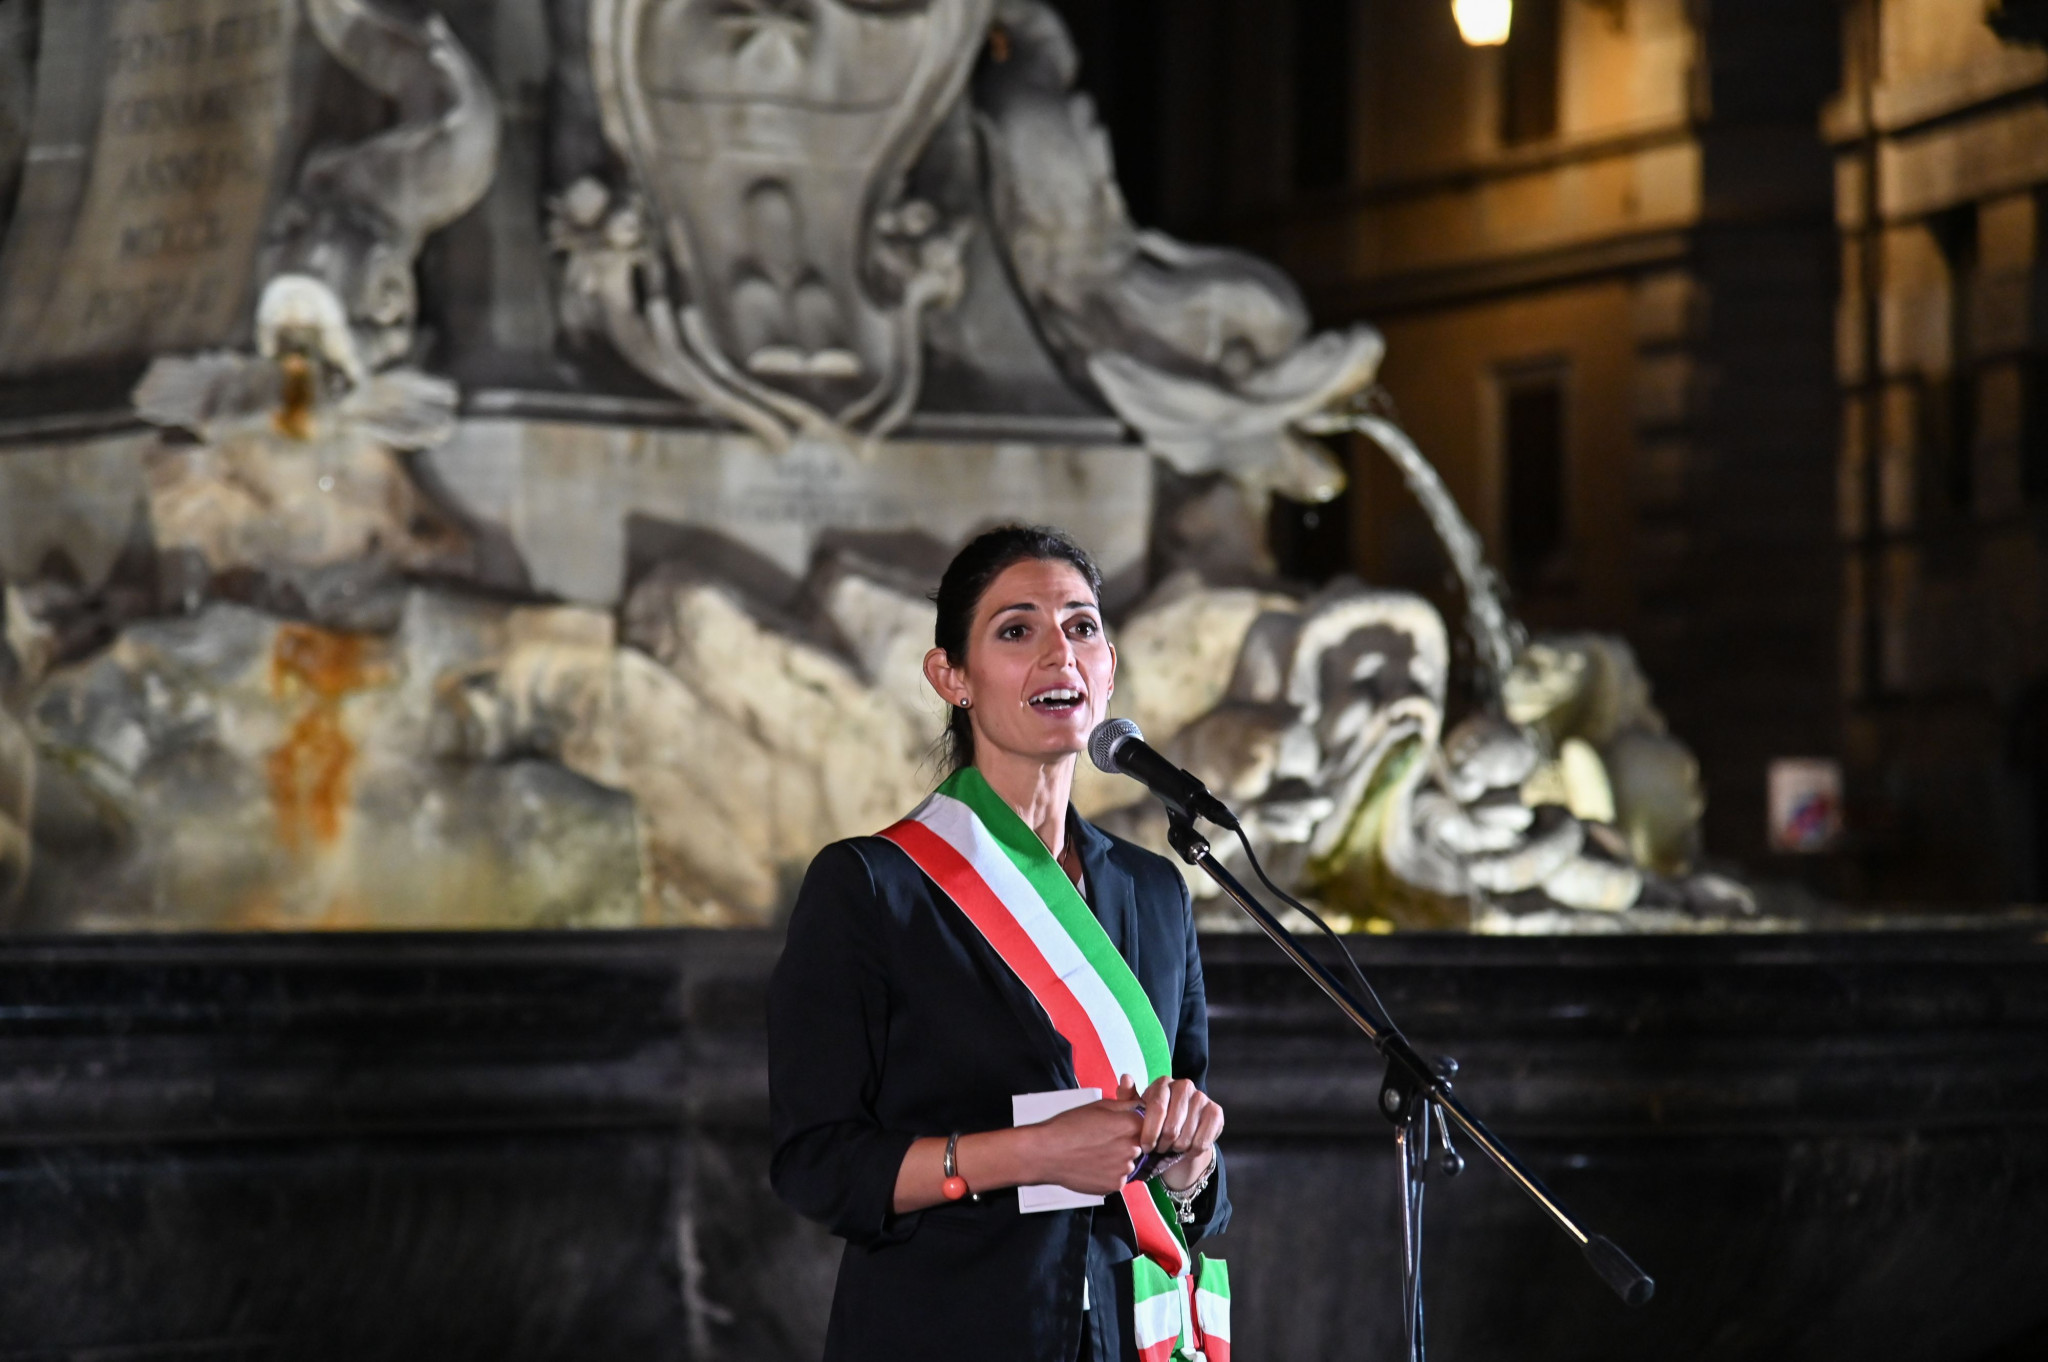 Rome Mayor Virginia Raggi used a previous Saïd Business School study in her reasoning to withdraw the city's bid for the 2024 Olympics ©Getty Images